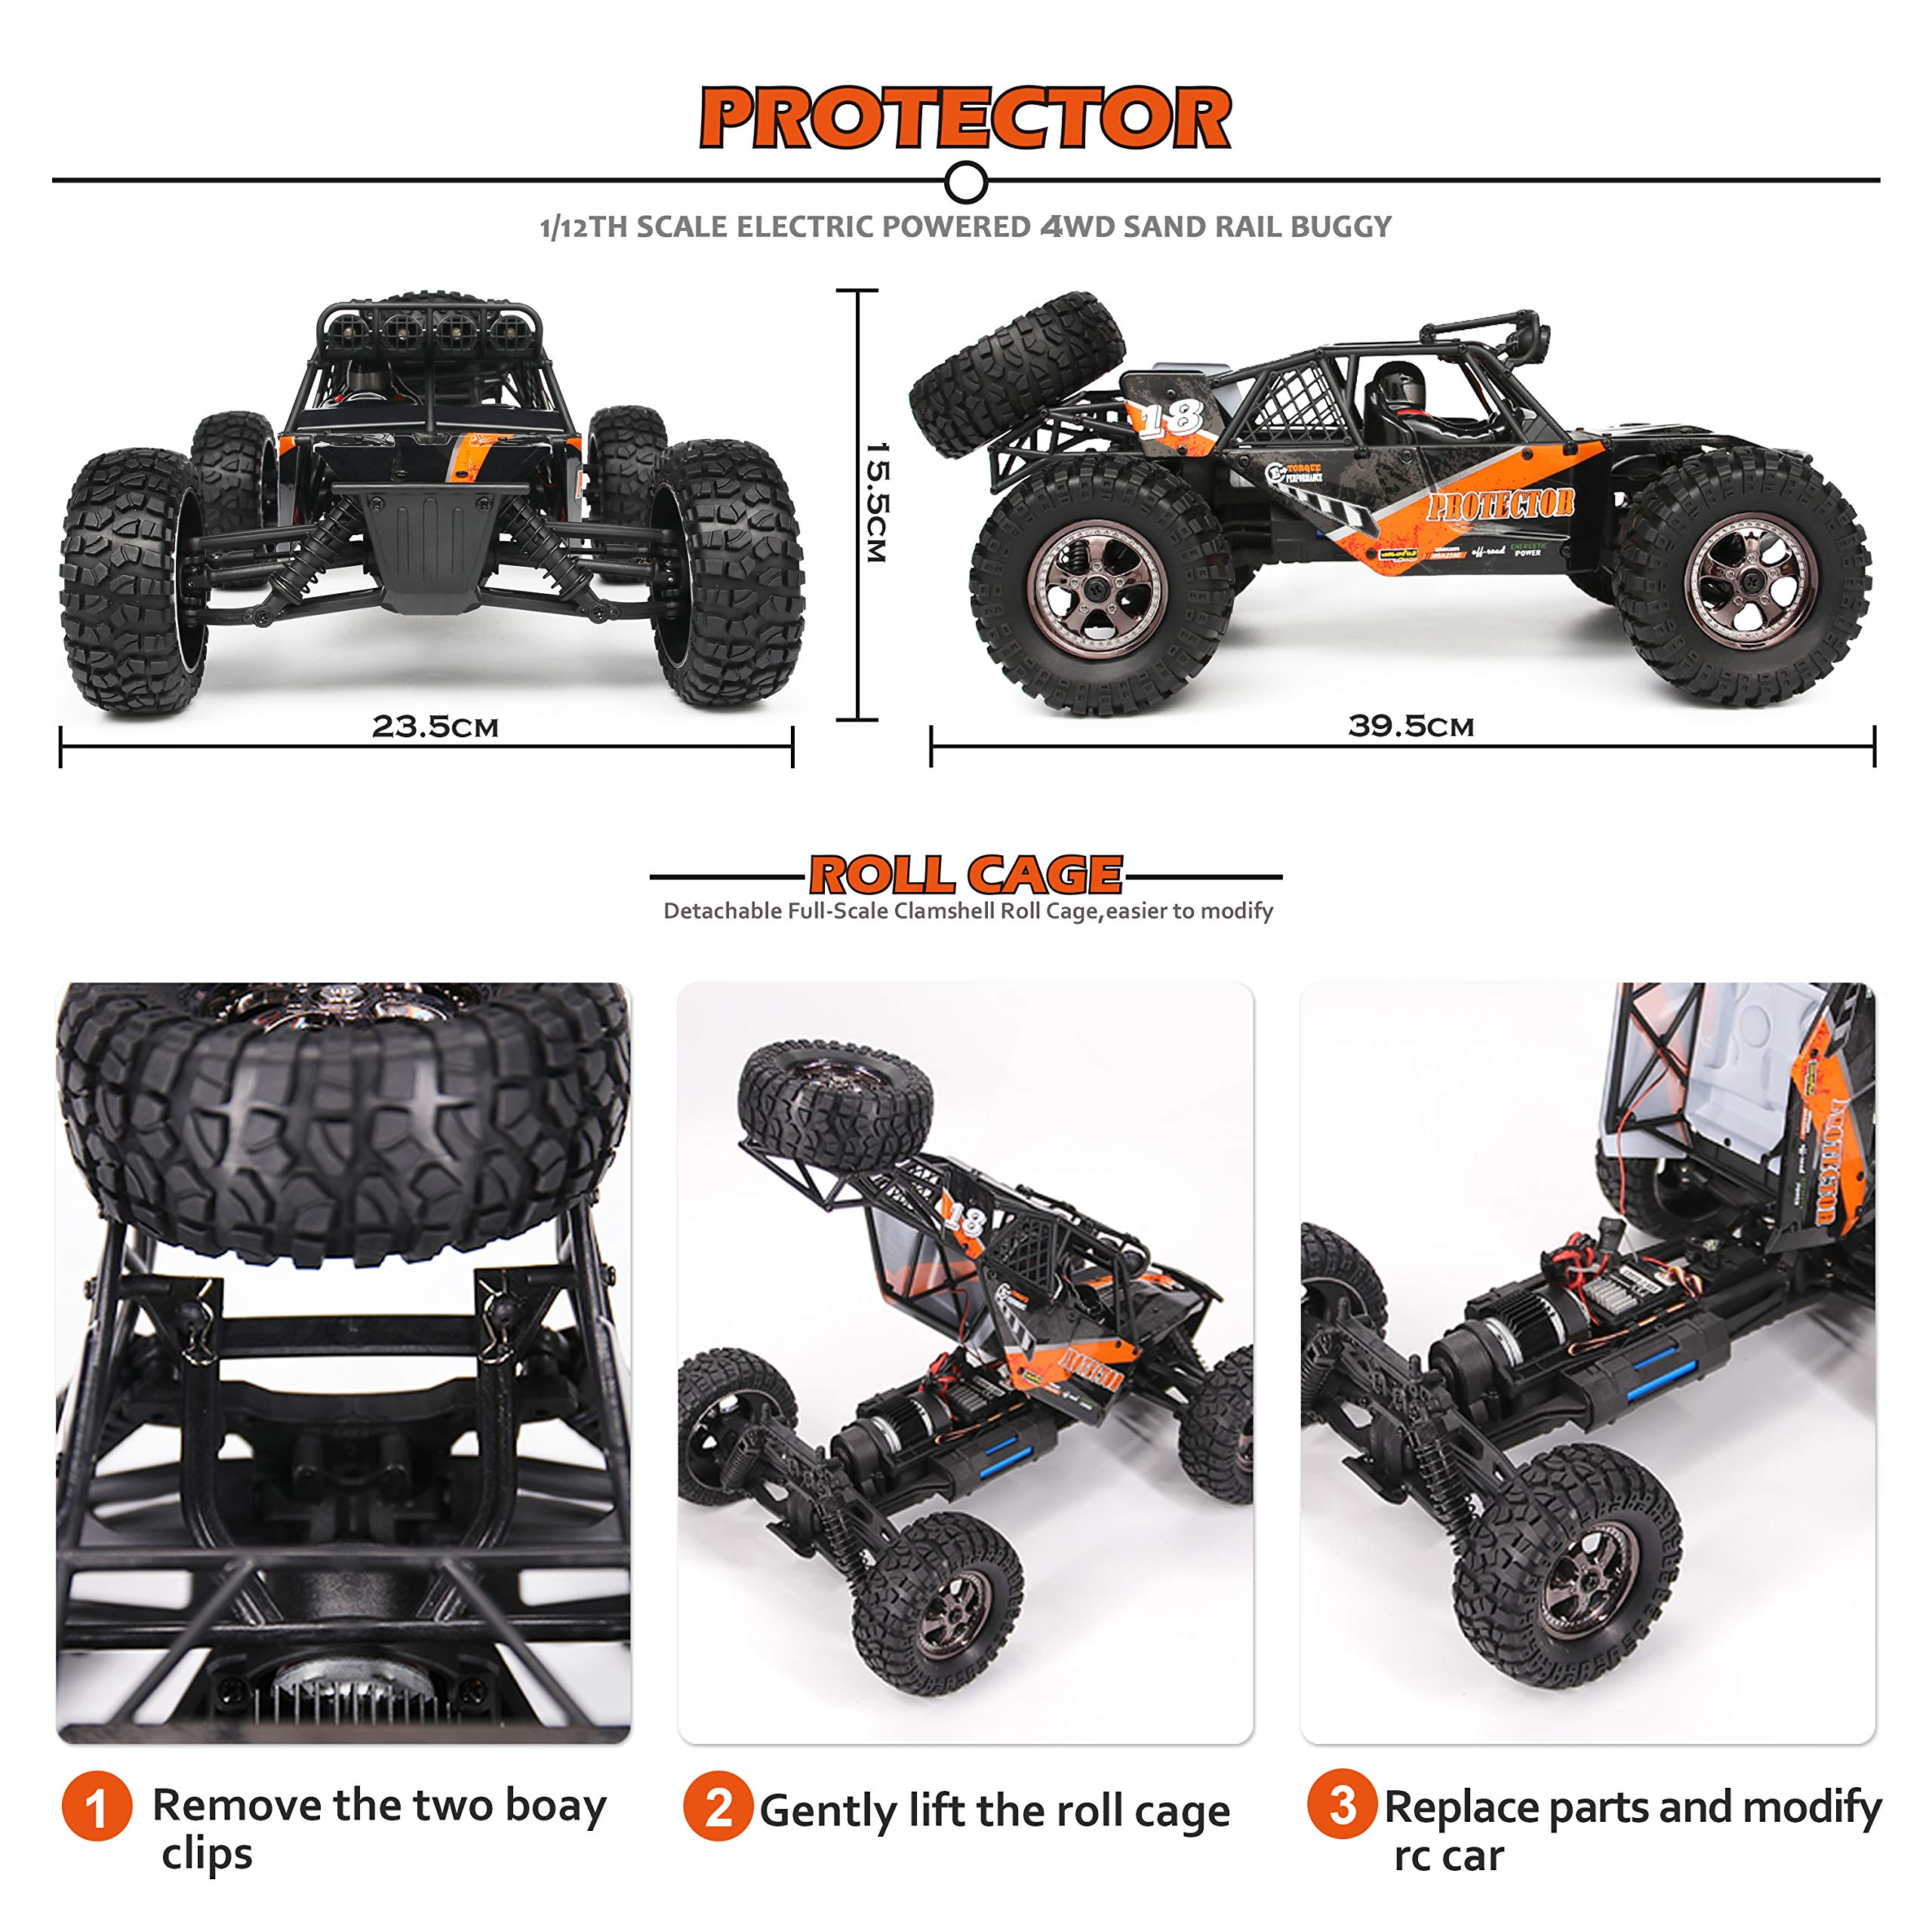 RC Cars Protector 1/12 Scale 4WD Off-Road Buggy 38+KM/H High Speed LED Lights, 2.4 GHz Radio Controlled All Terrain Waterproof Trucks RTR Electric Power Rechargeable Batteries 7.4 V 1500 mAh by BBM HOBBY (Image #3)